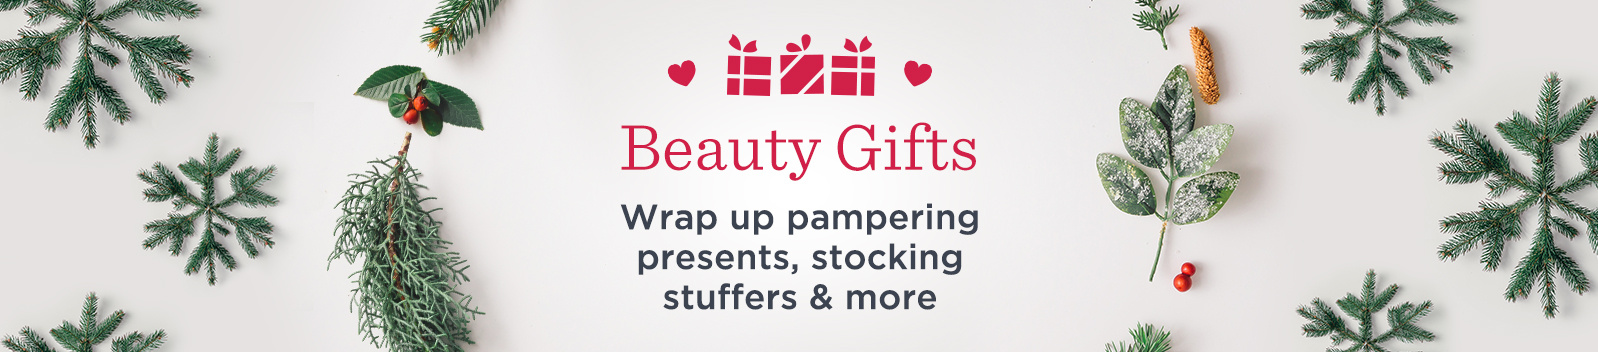 Beauty Gifts  Wrap up pampering presents, stocking stuffers & more